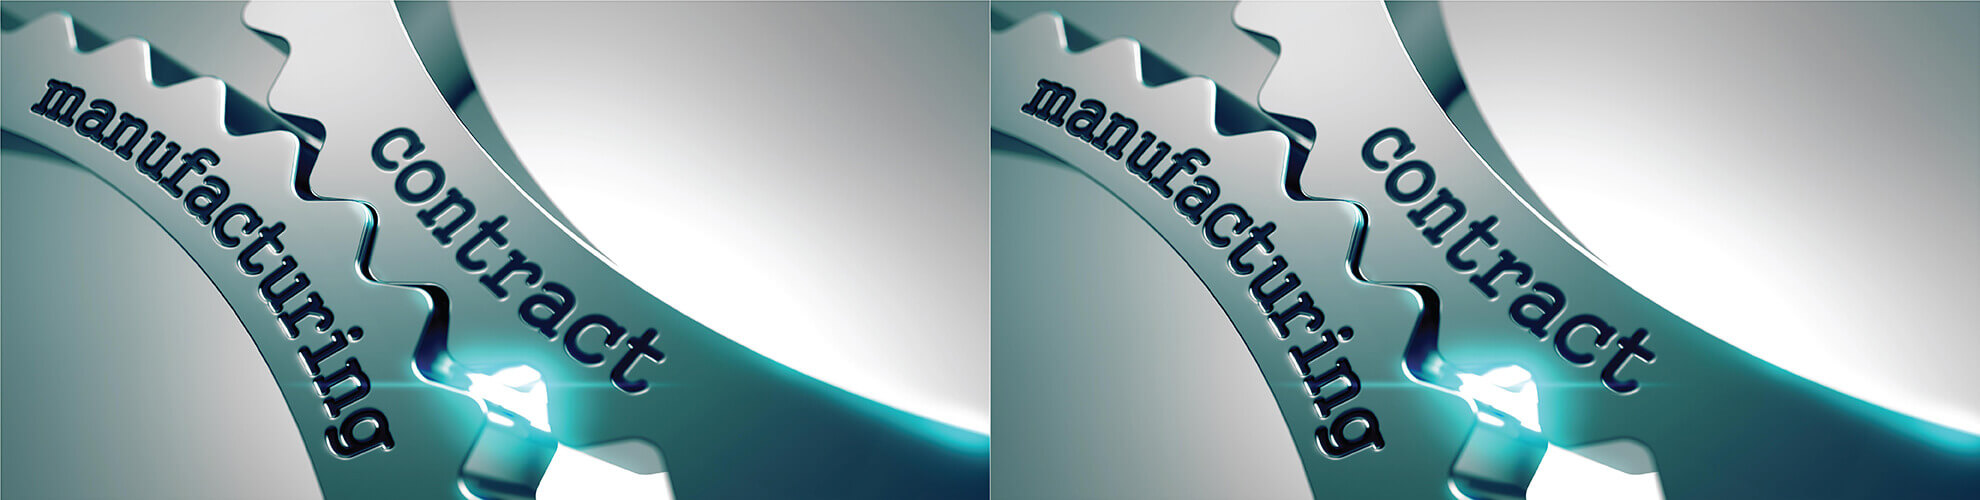 Contract & Manufacturing